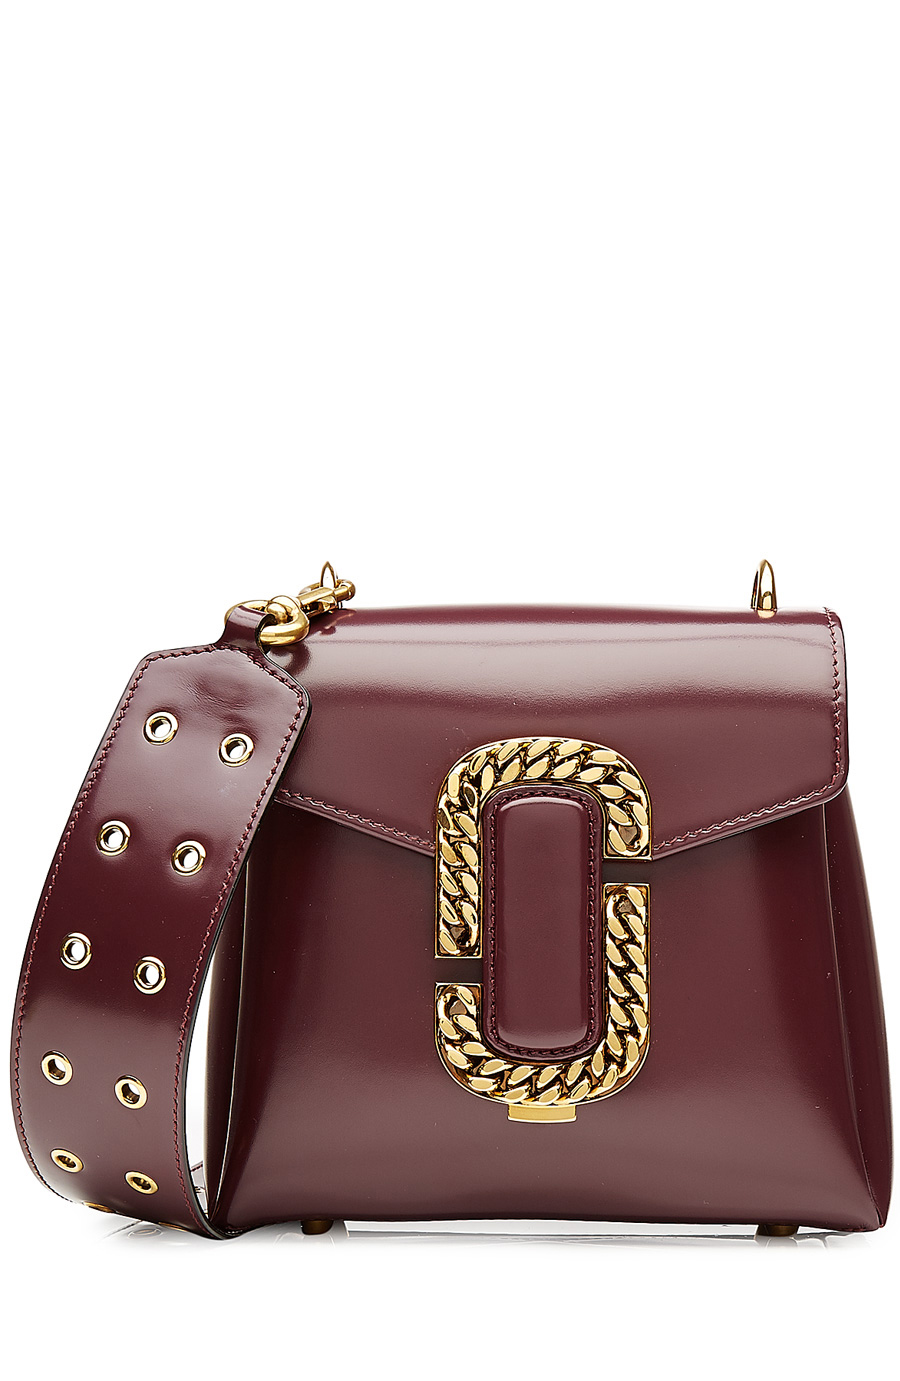 Marc Jacobs Patent Leather Bag rCUYBEwRP